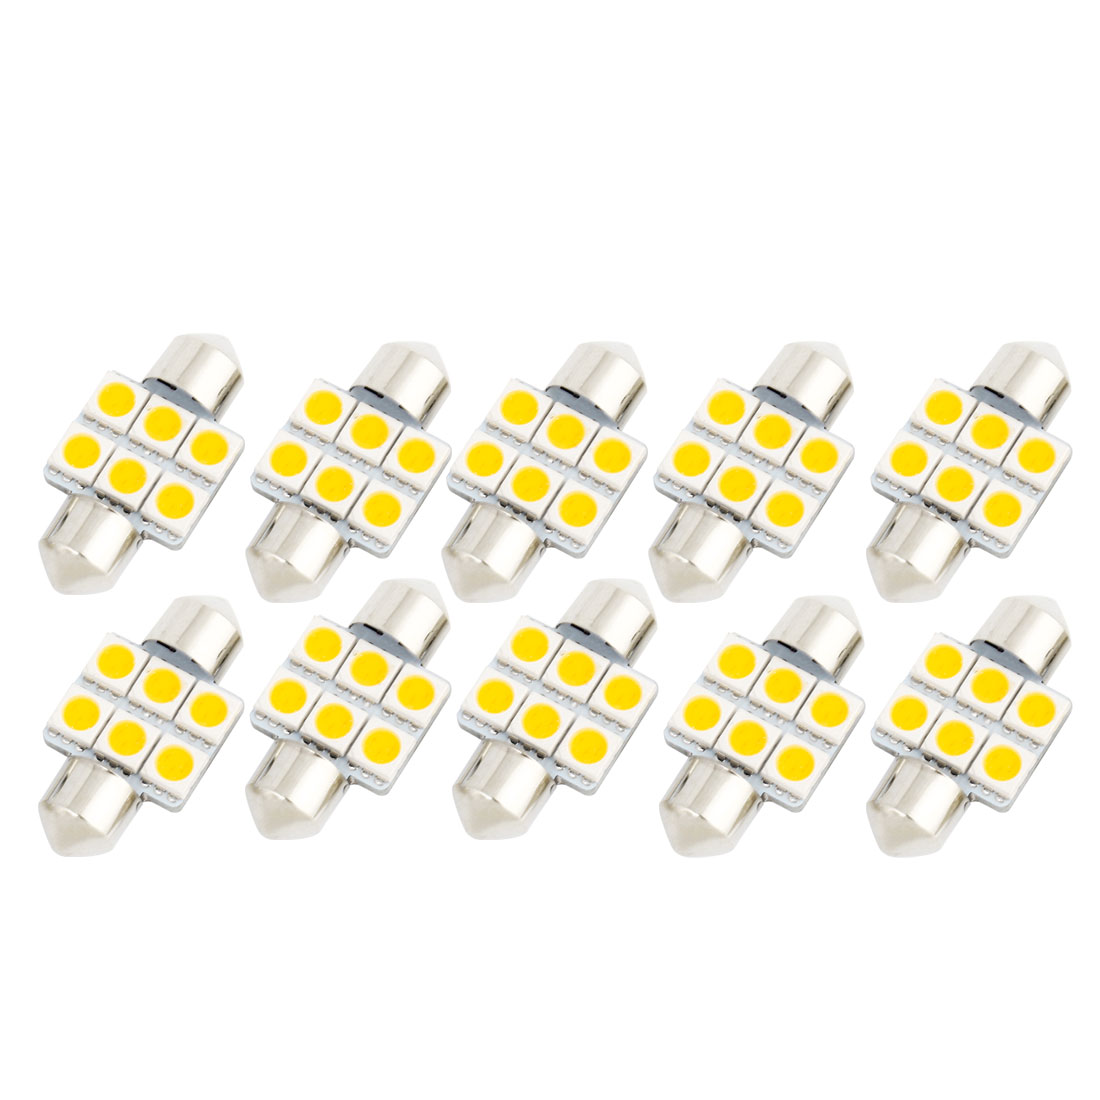 10Pcs 31mm 5050 SMD 6 LED Warm White Festoon Dome Map Reading Light DE3175 DE3022 DE3021 Internal